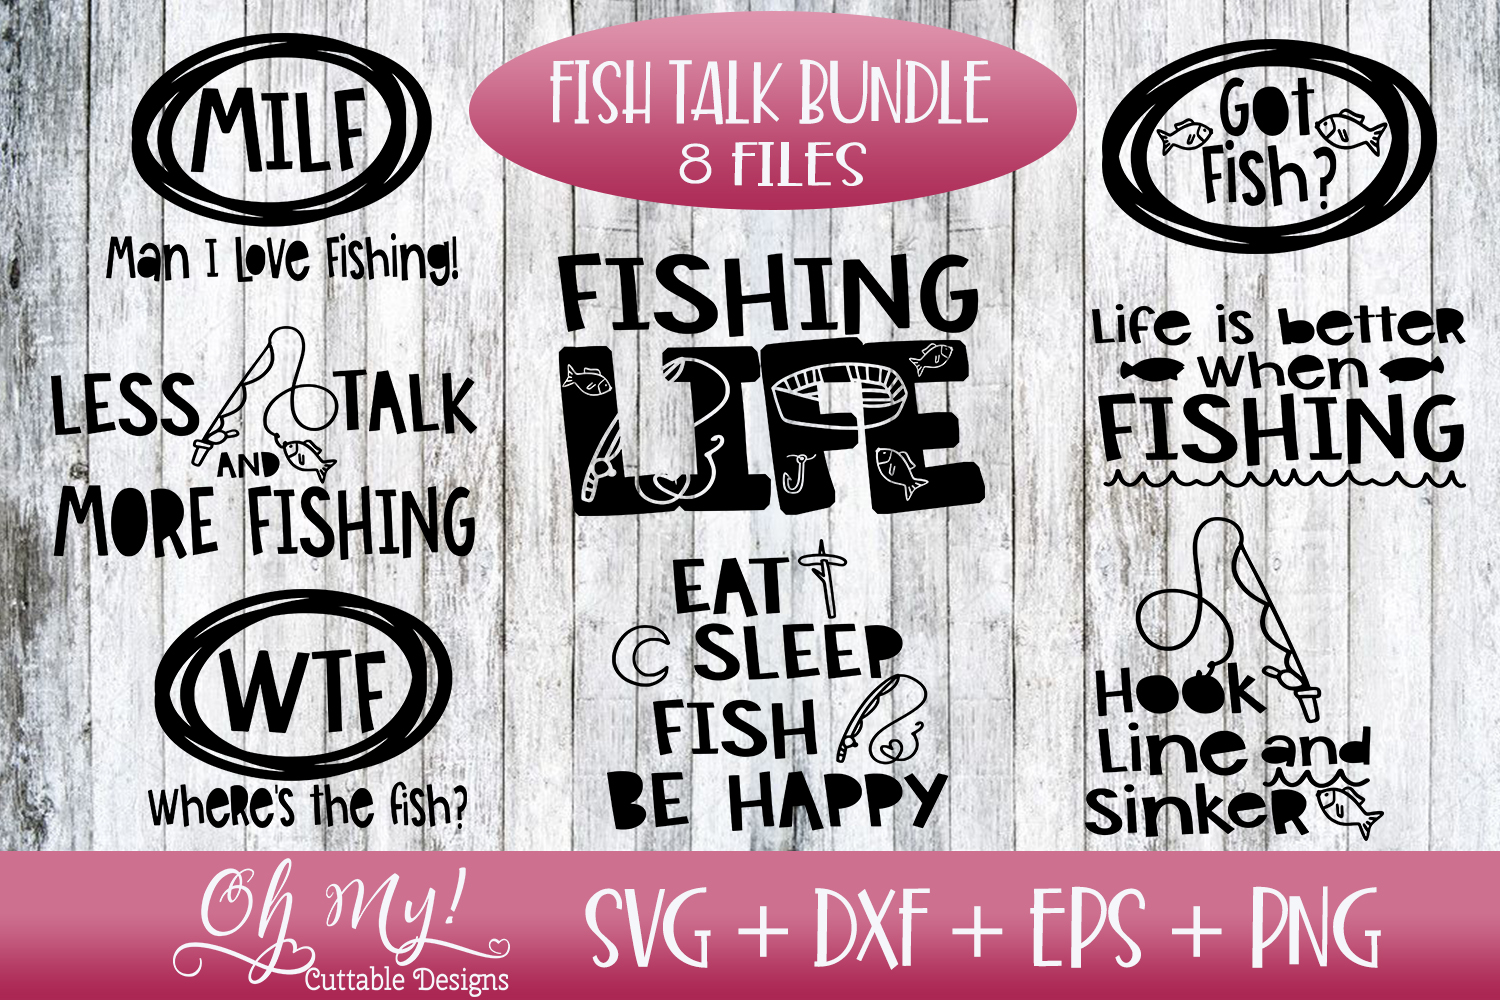 Fish Talk Bundle - 8 Files - SVG DXF EPS PNG Cutting File example image 1